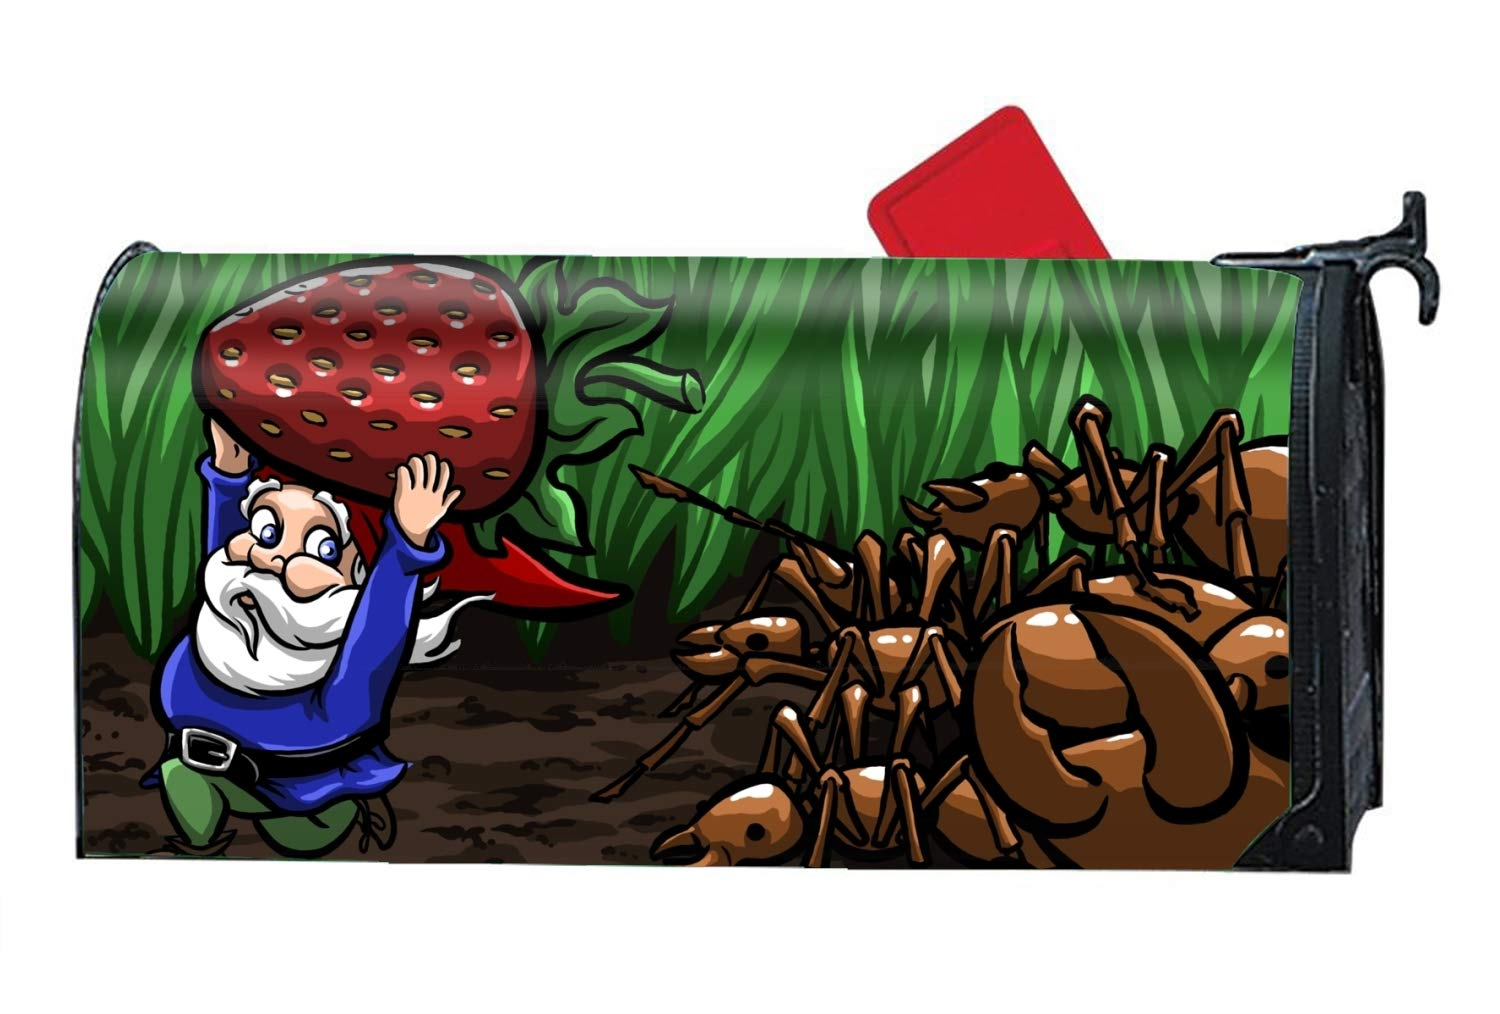 fffvv Magnetic Mailbox Cover - Humor Gnome Cute Cartoon, Decorative Mailbox Wrap for Standard Size - Welcome Home